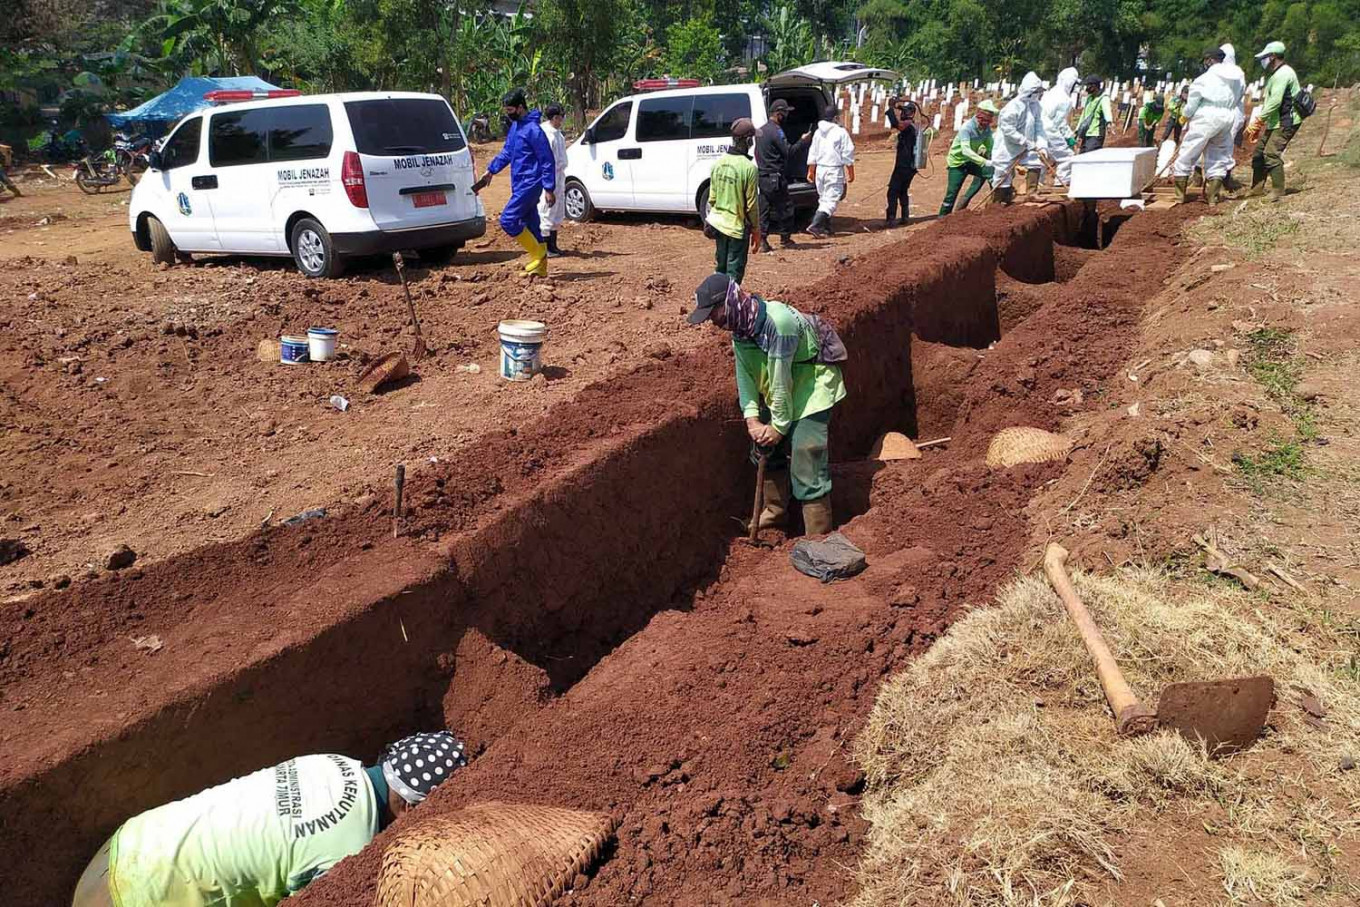 Gresik residents made to dig graves as punishment for not wearing face masks